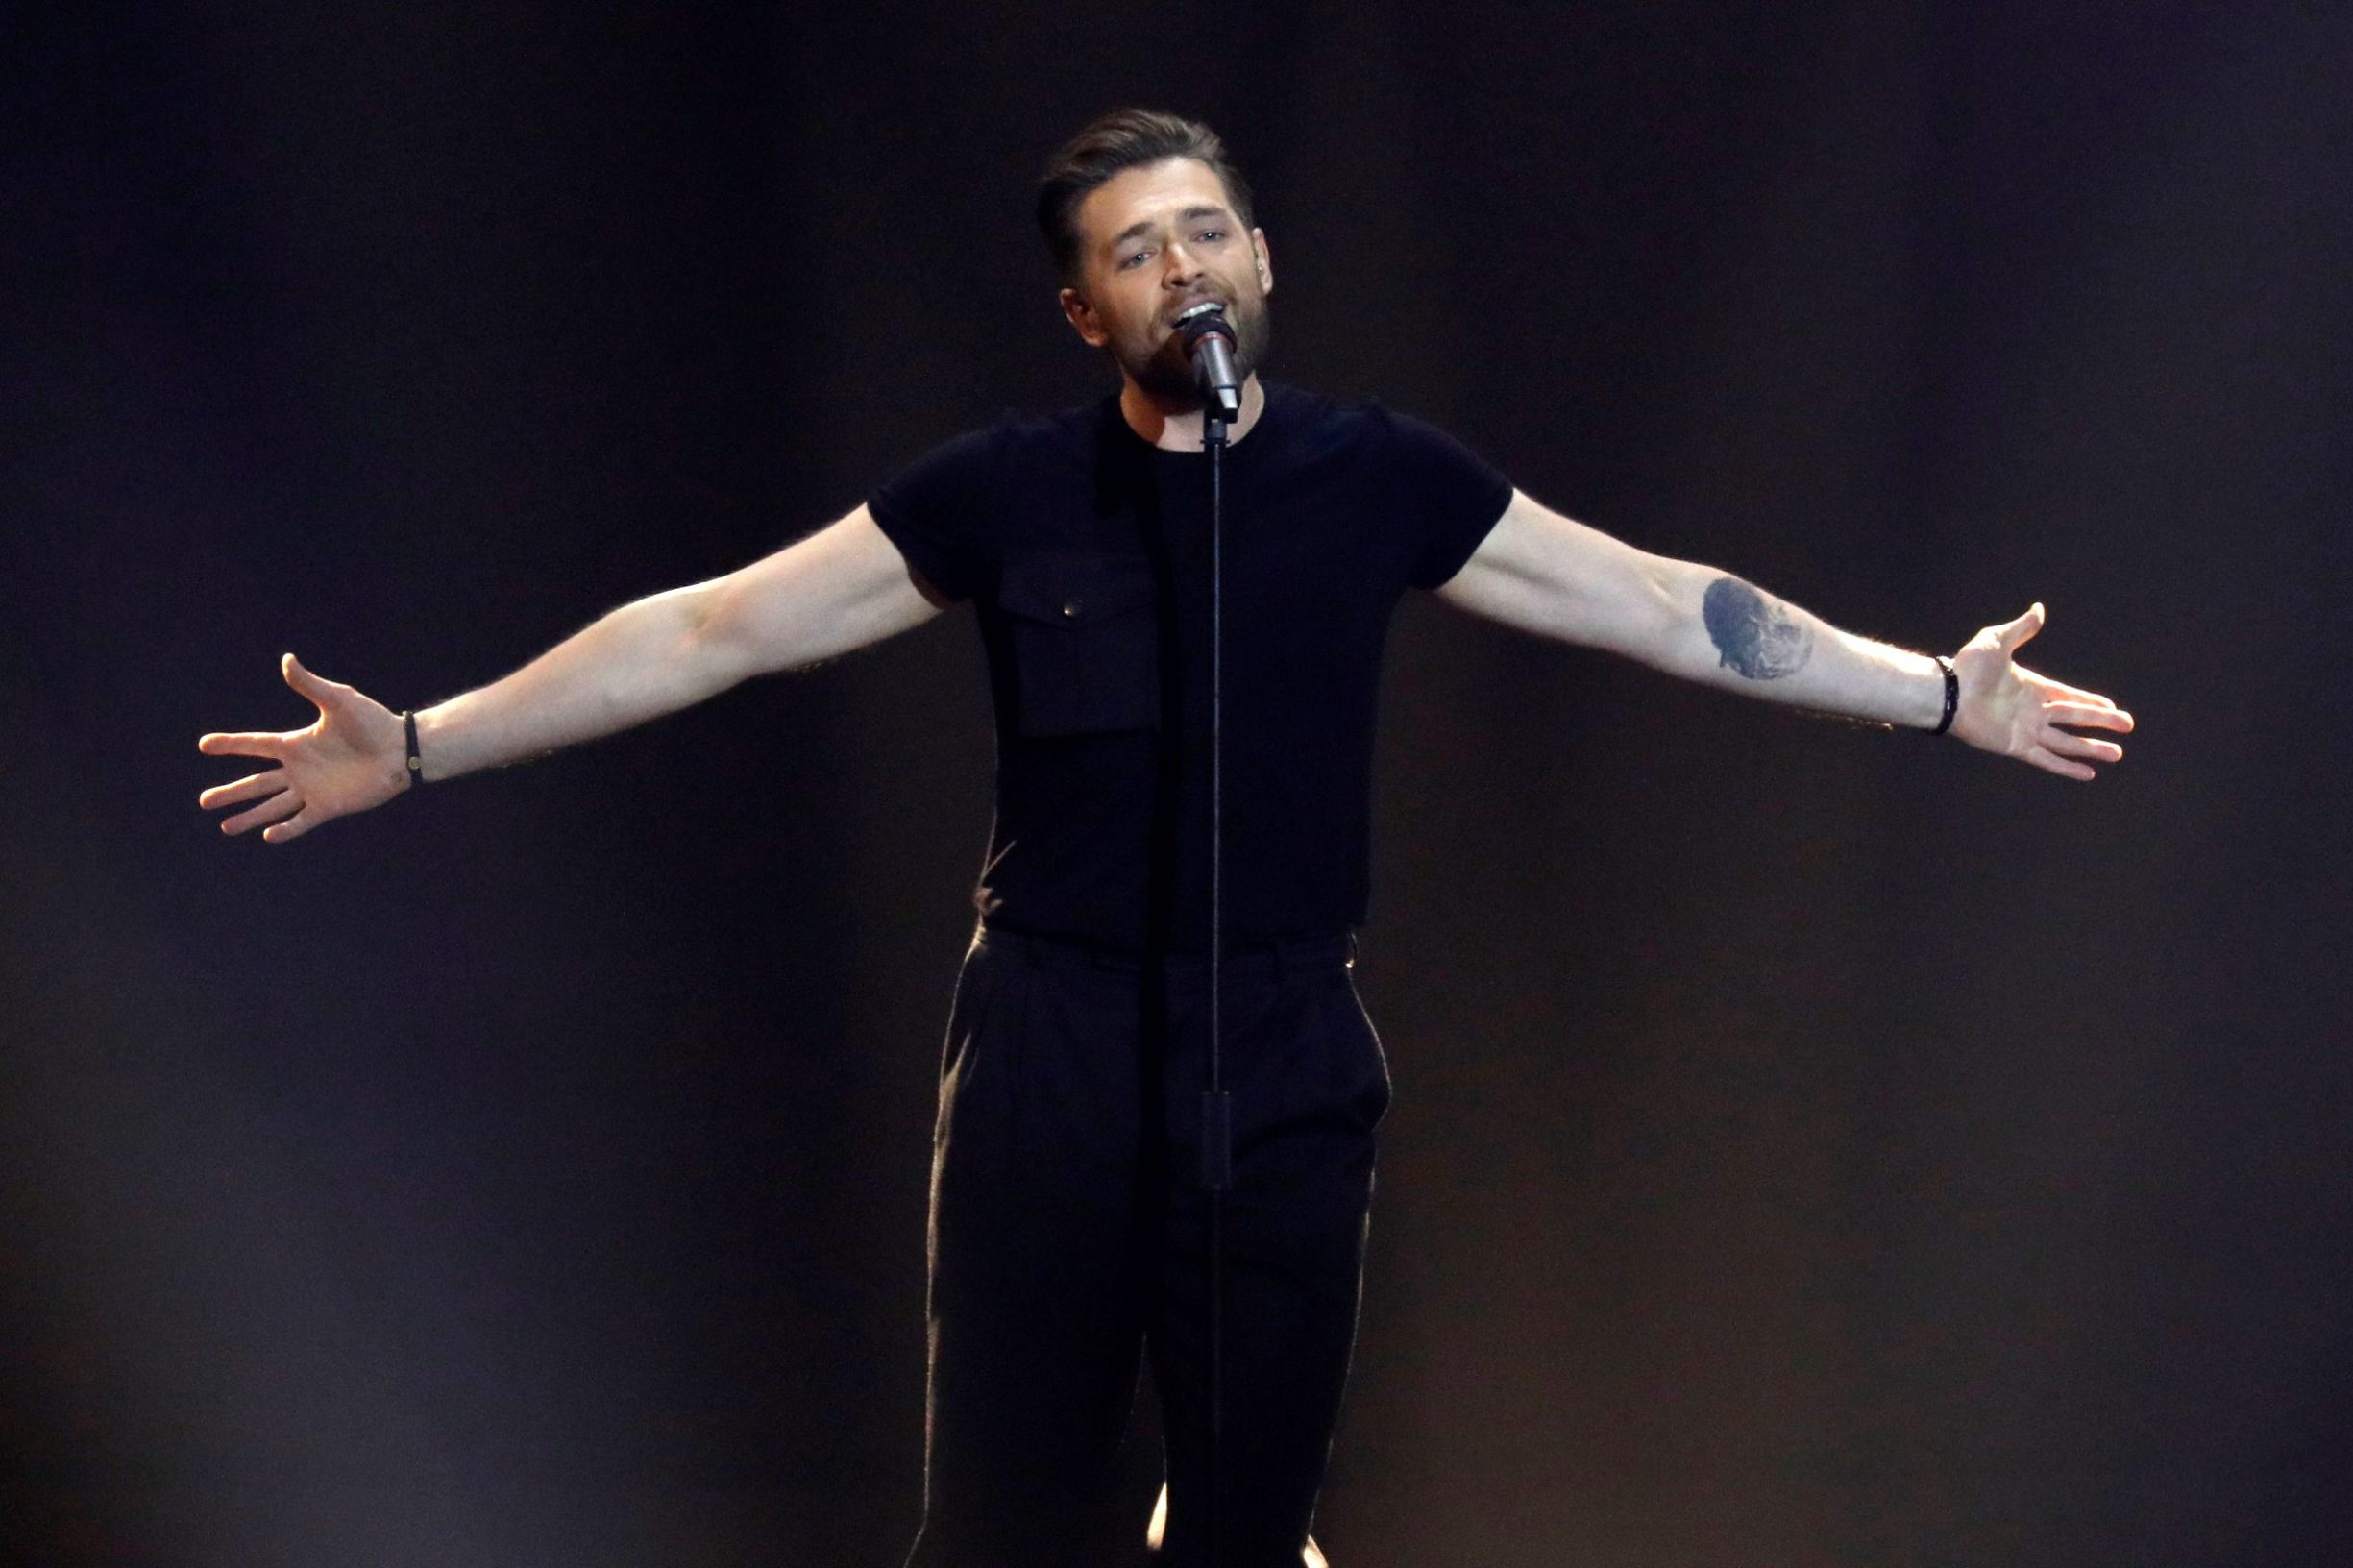 Participant Jurij Veklenko of Lithuania performs during second semi-final of 2019 Eurovision Song Contest in Tel Aviv, Israel May 16, 2019. REUTERS/ Amir Cohen